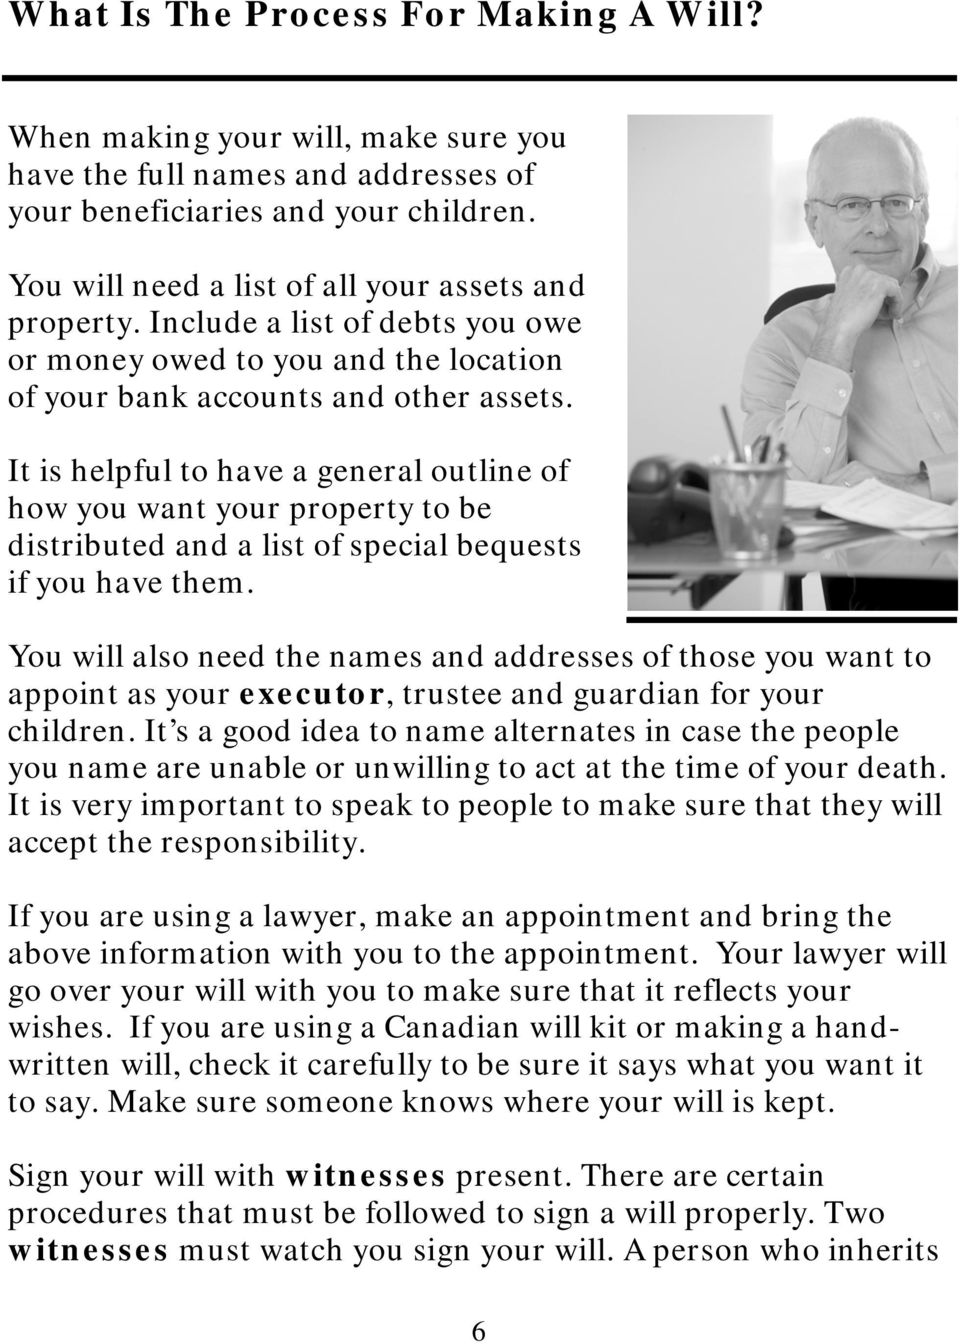 It is helpful to have a general outline of how you want your property to be distributed and a list of special bequests if you have them.